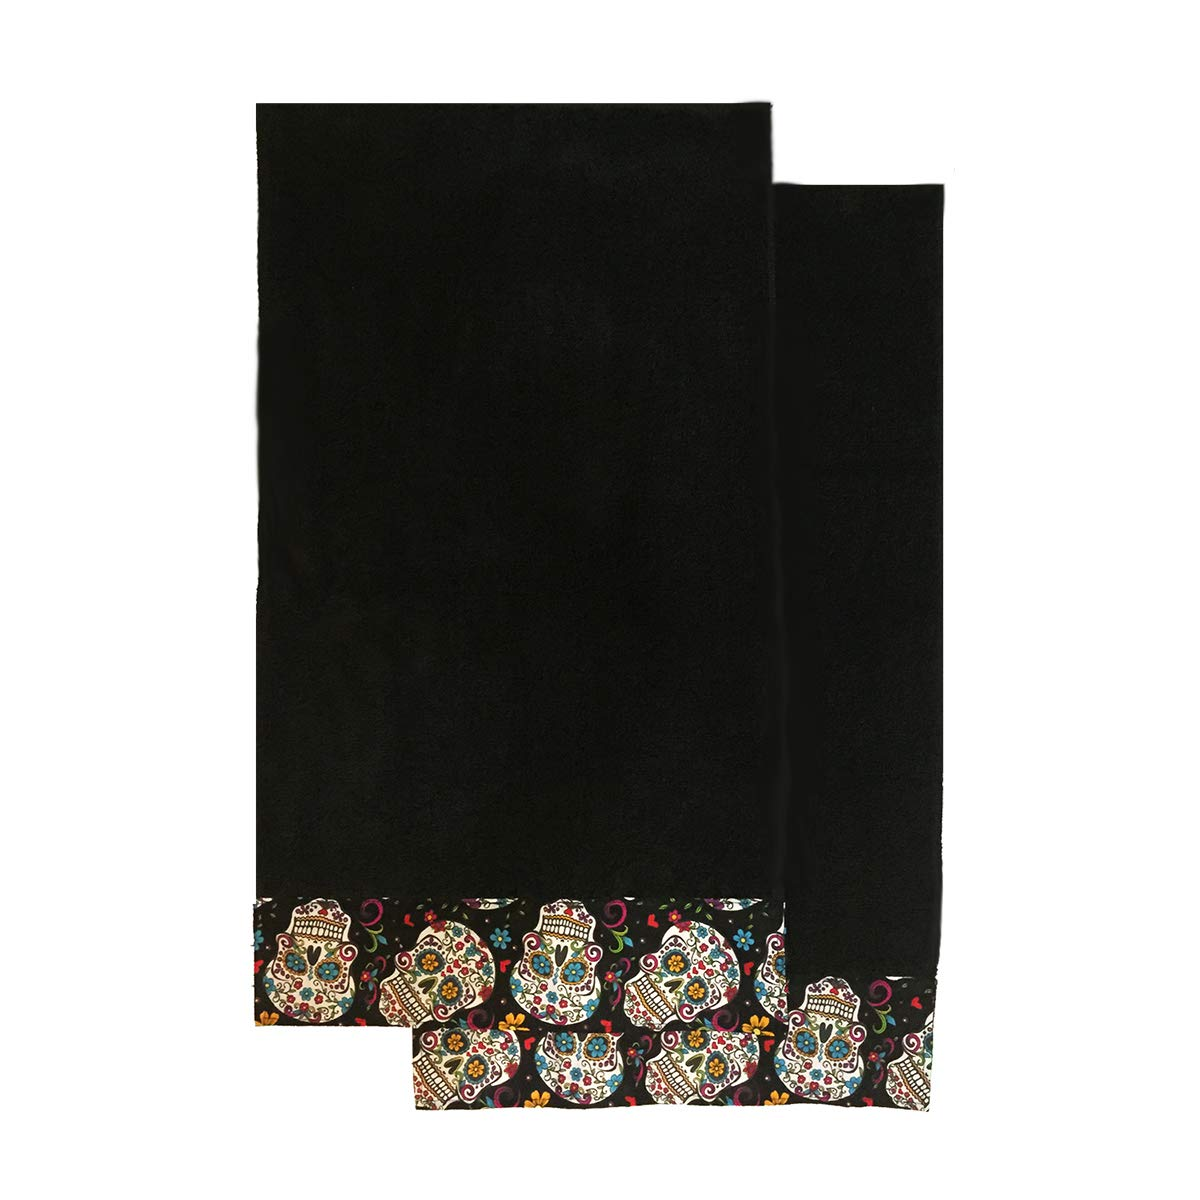 Jumpsies Sugar Skull Kitchen Towel Bath Hand Towel Set of 2 Pieces (Black) 9